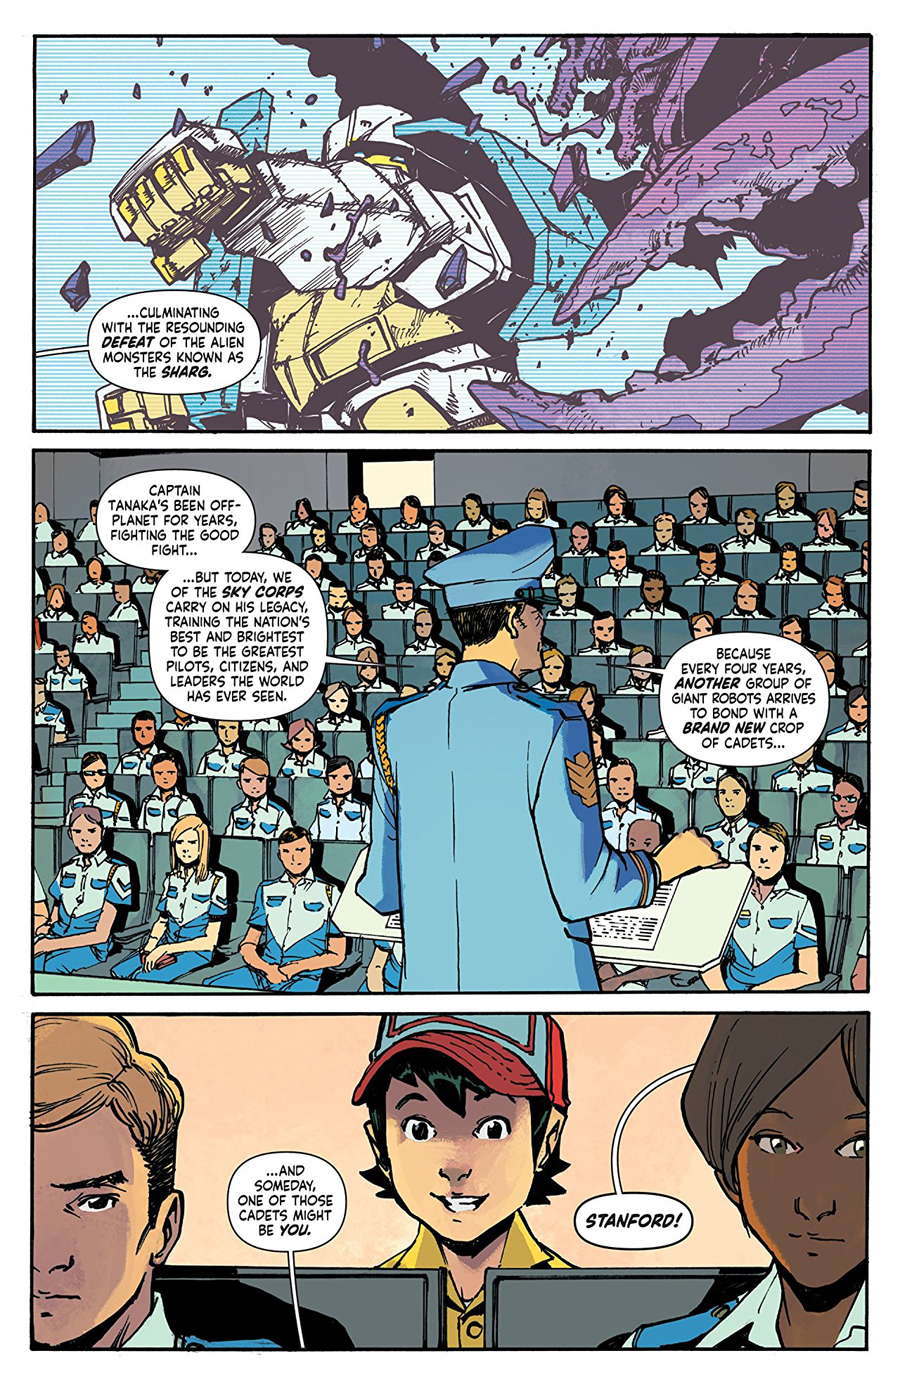 Stanford working as a janitor in Mech cadet Yu Vol. 1.